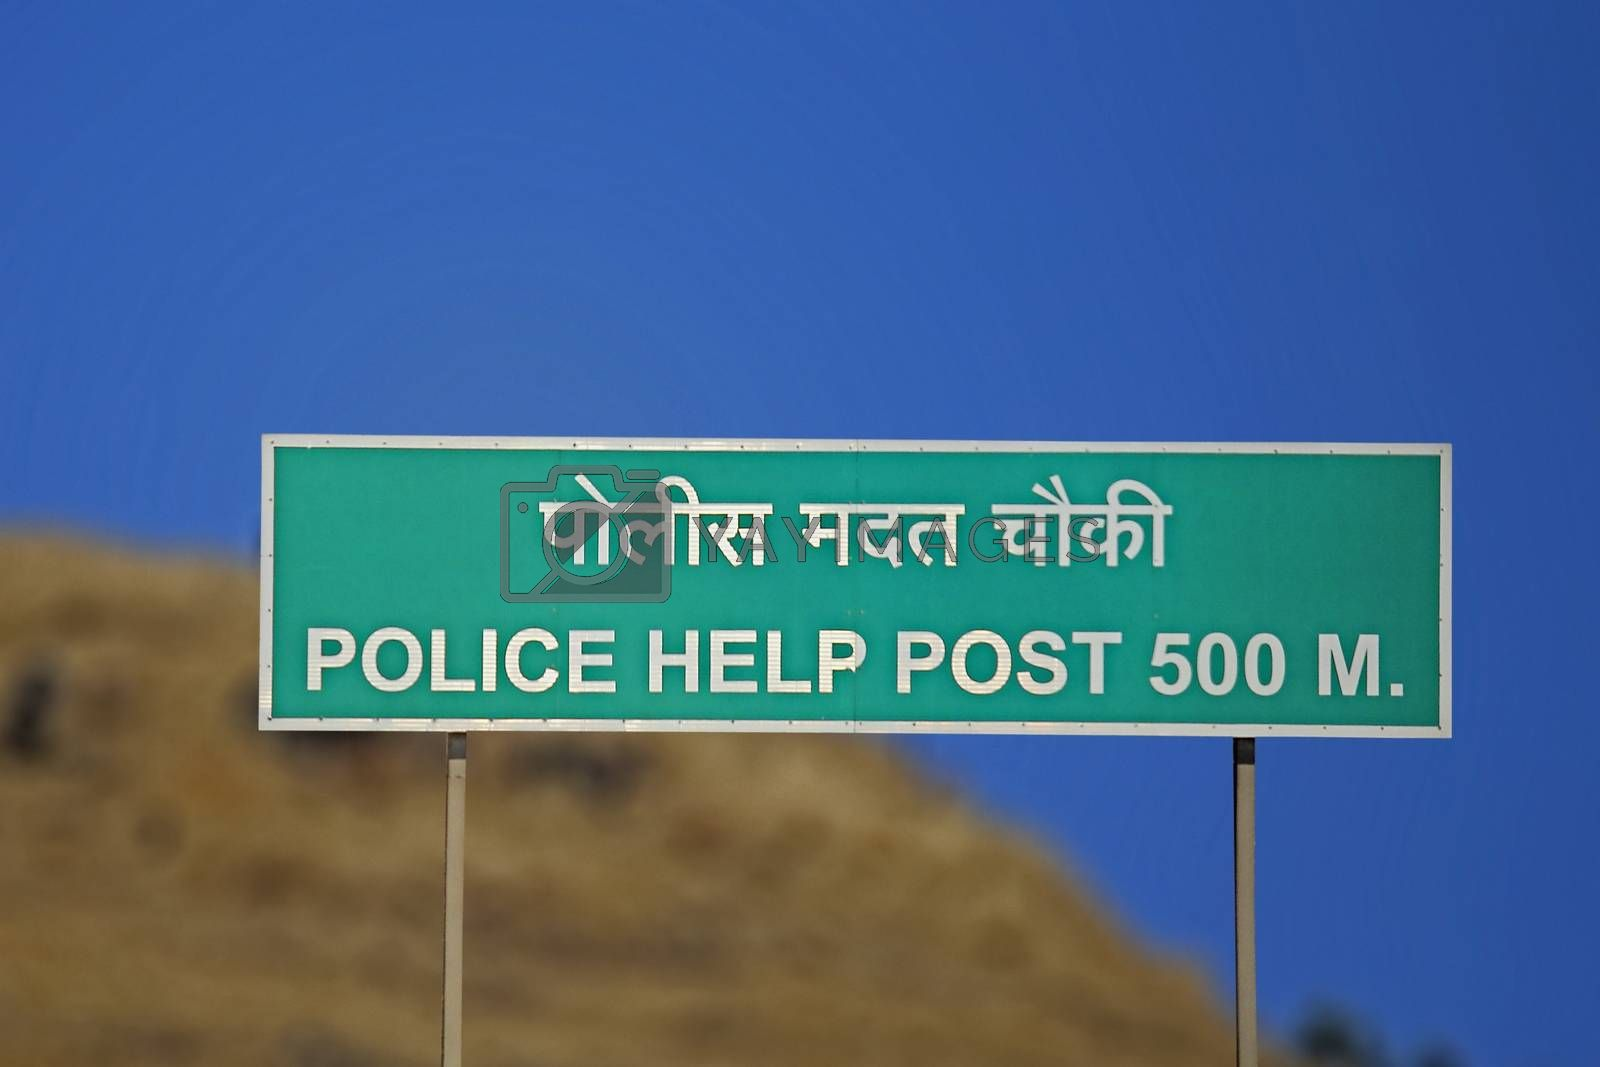 Royalty free image of police help post road side board by yands